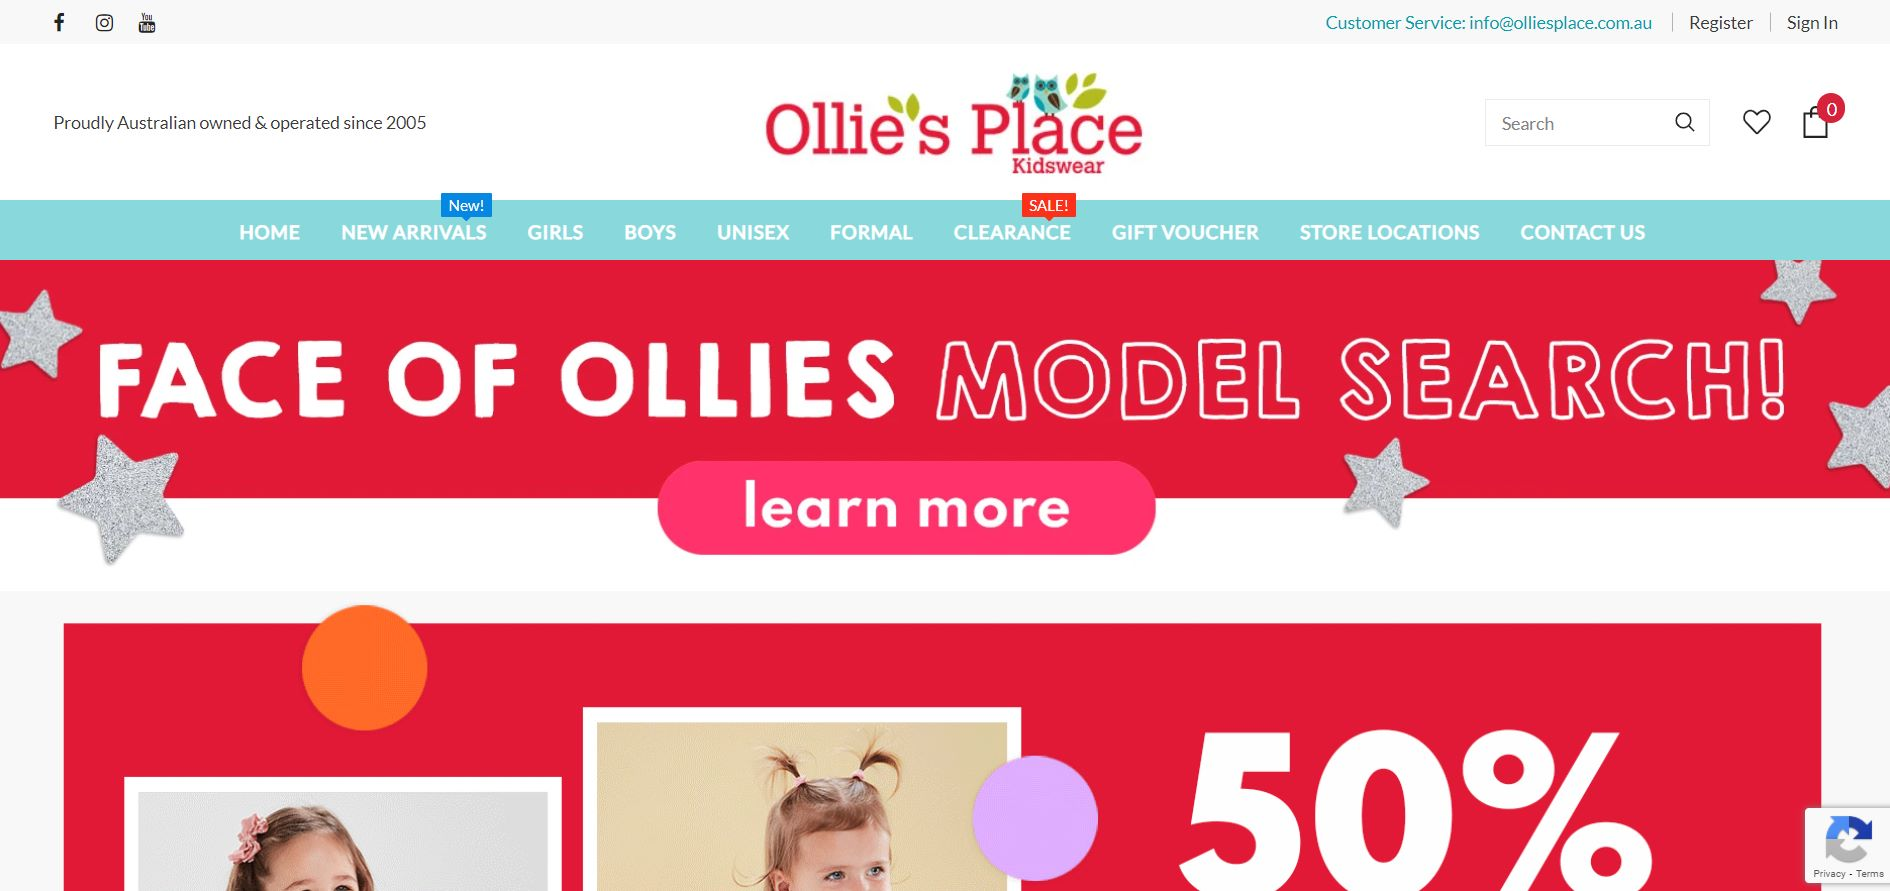 ollie's place